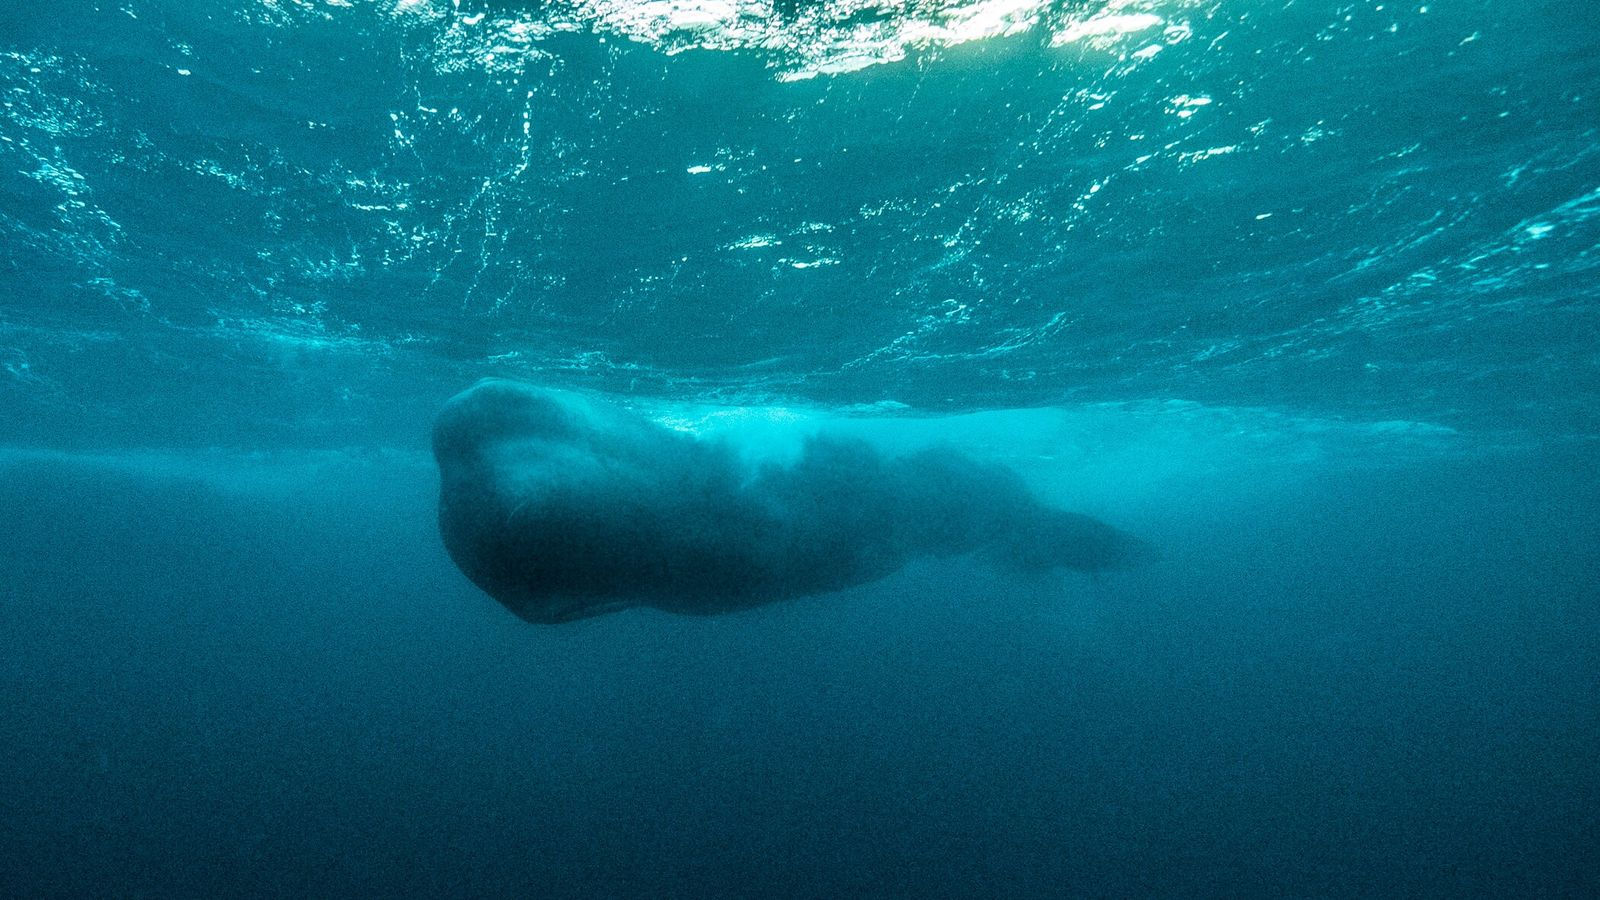 The team captured the only clear image of a male sperm whale underwater in this region ...